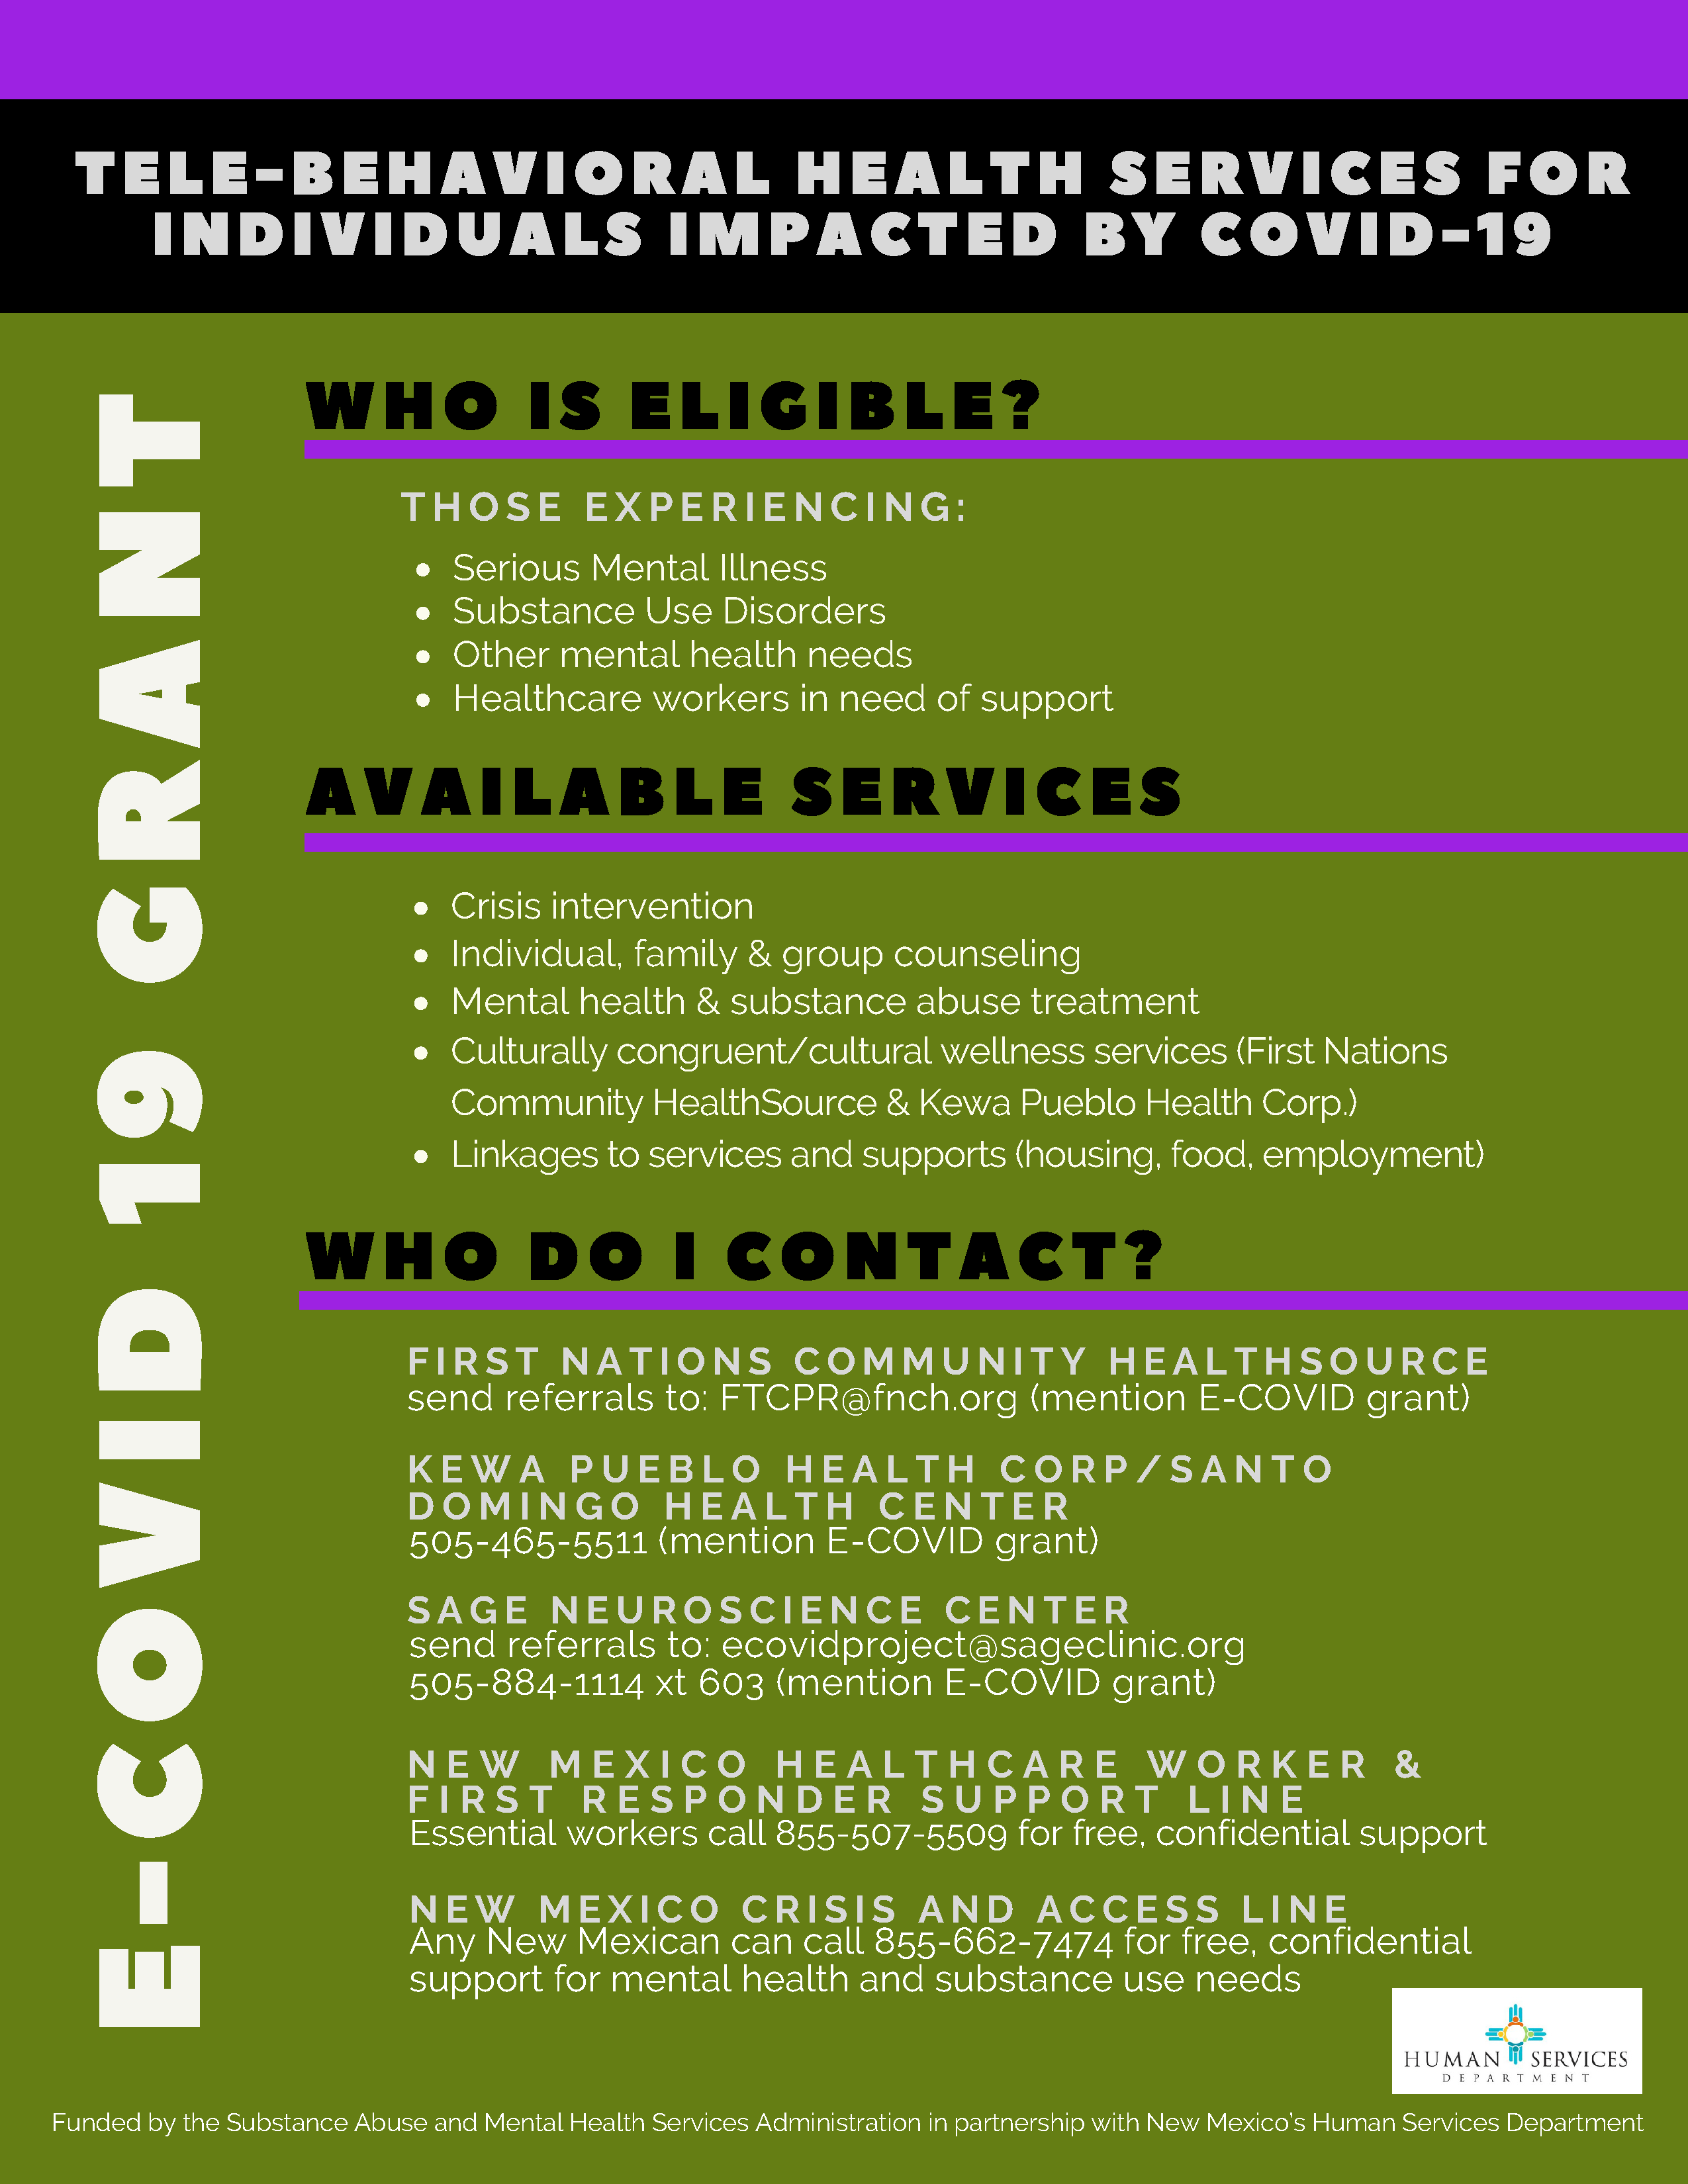 A flyer with white letters on black, purple and green background with information about Tele-Behavioral Health Services for individuals impacted by COVID-19.